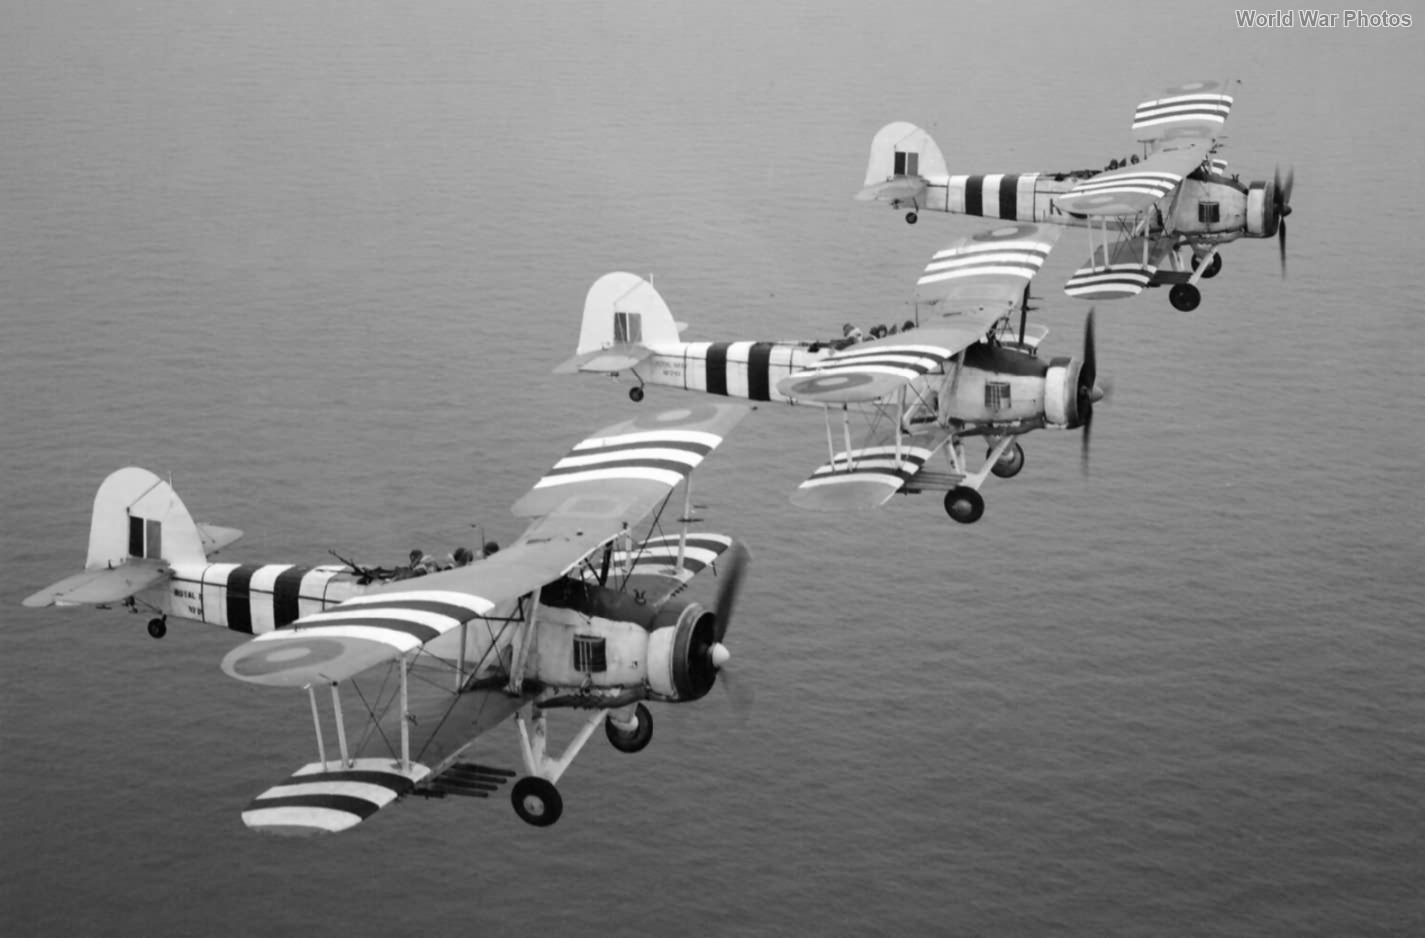 Swordfishes from 816 Squadron August 1944